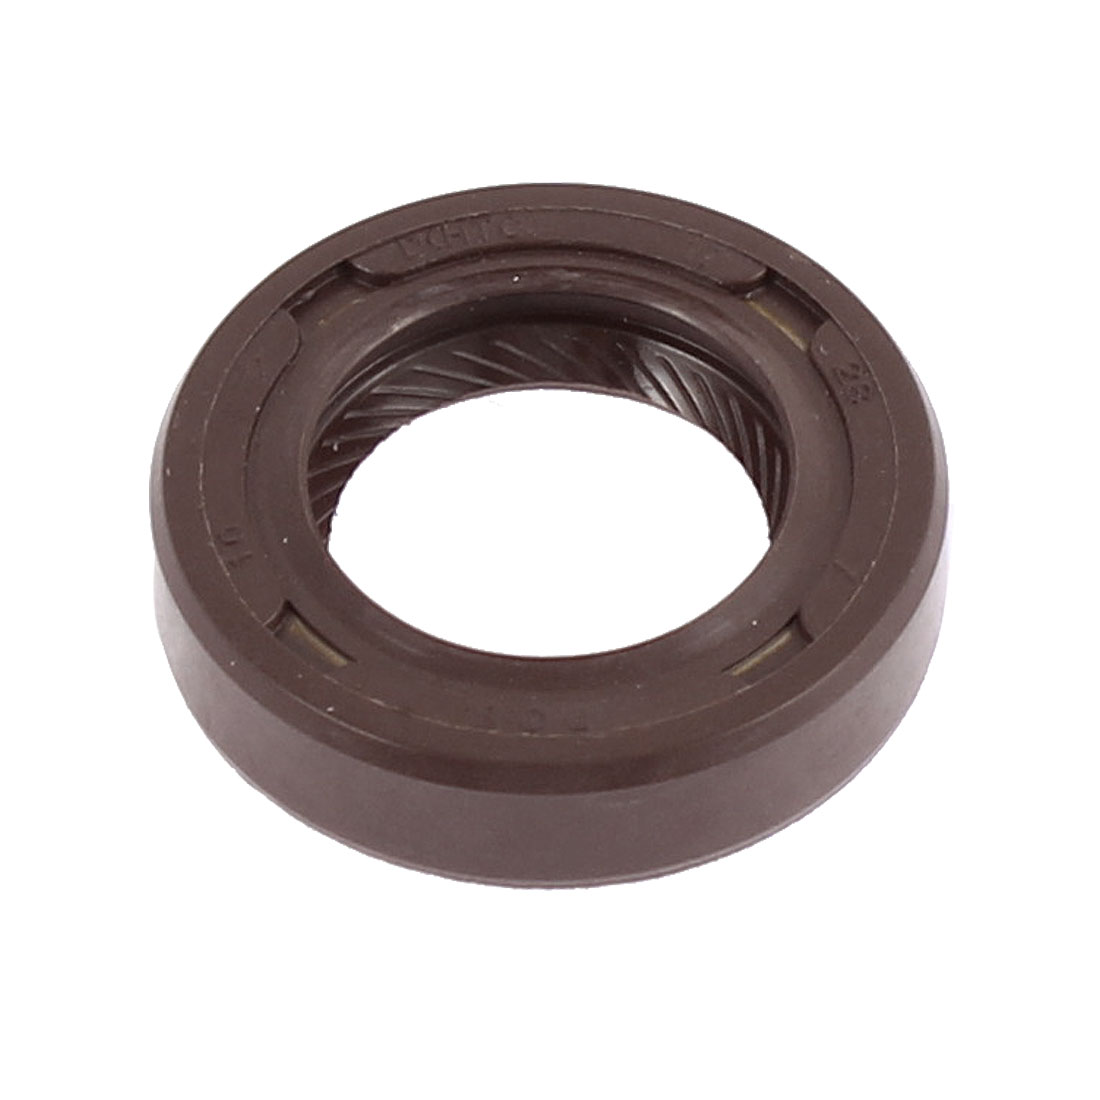 Oil Seal O Rings Gasket Washer 17mm x 28mm x 7mm